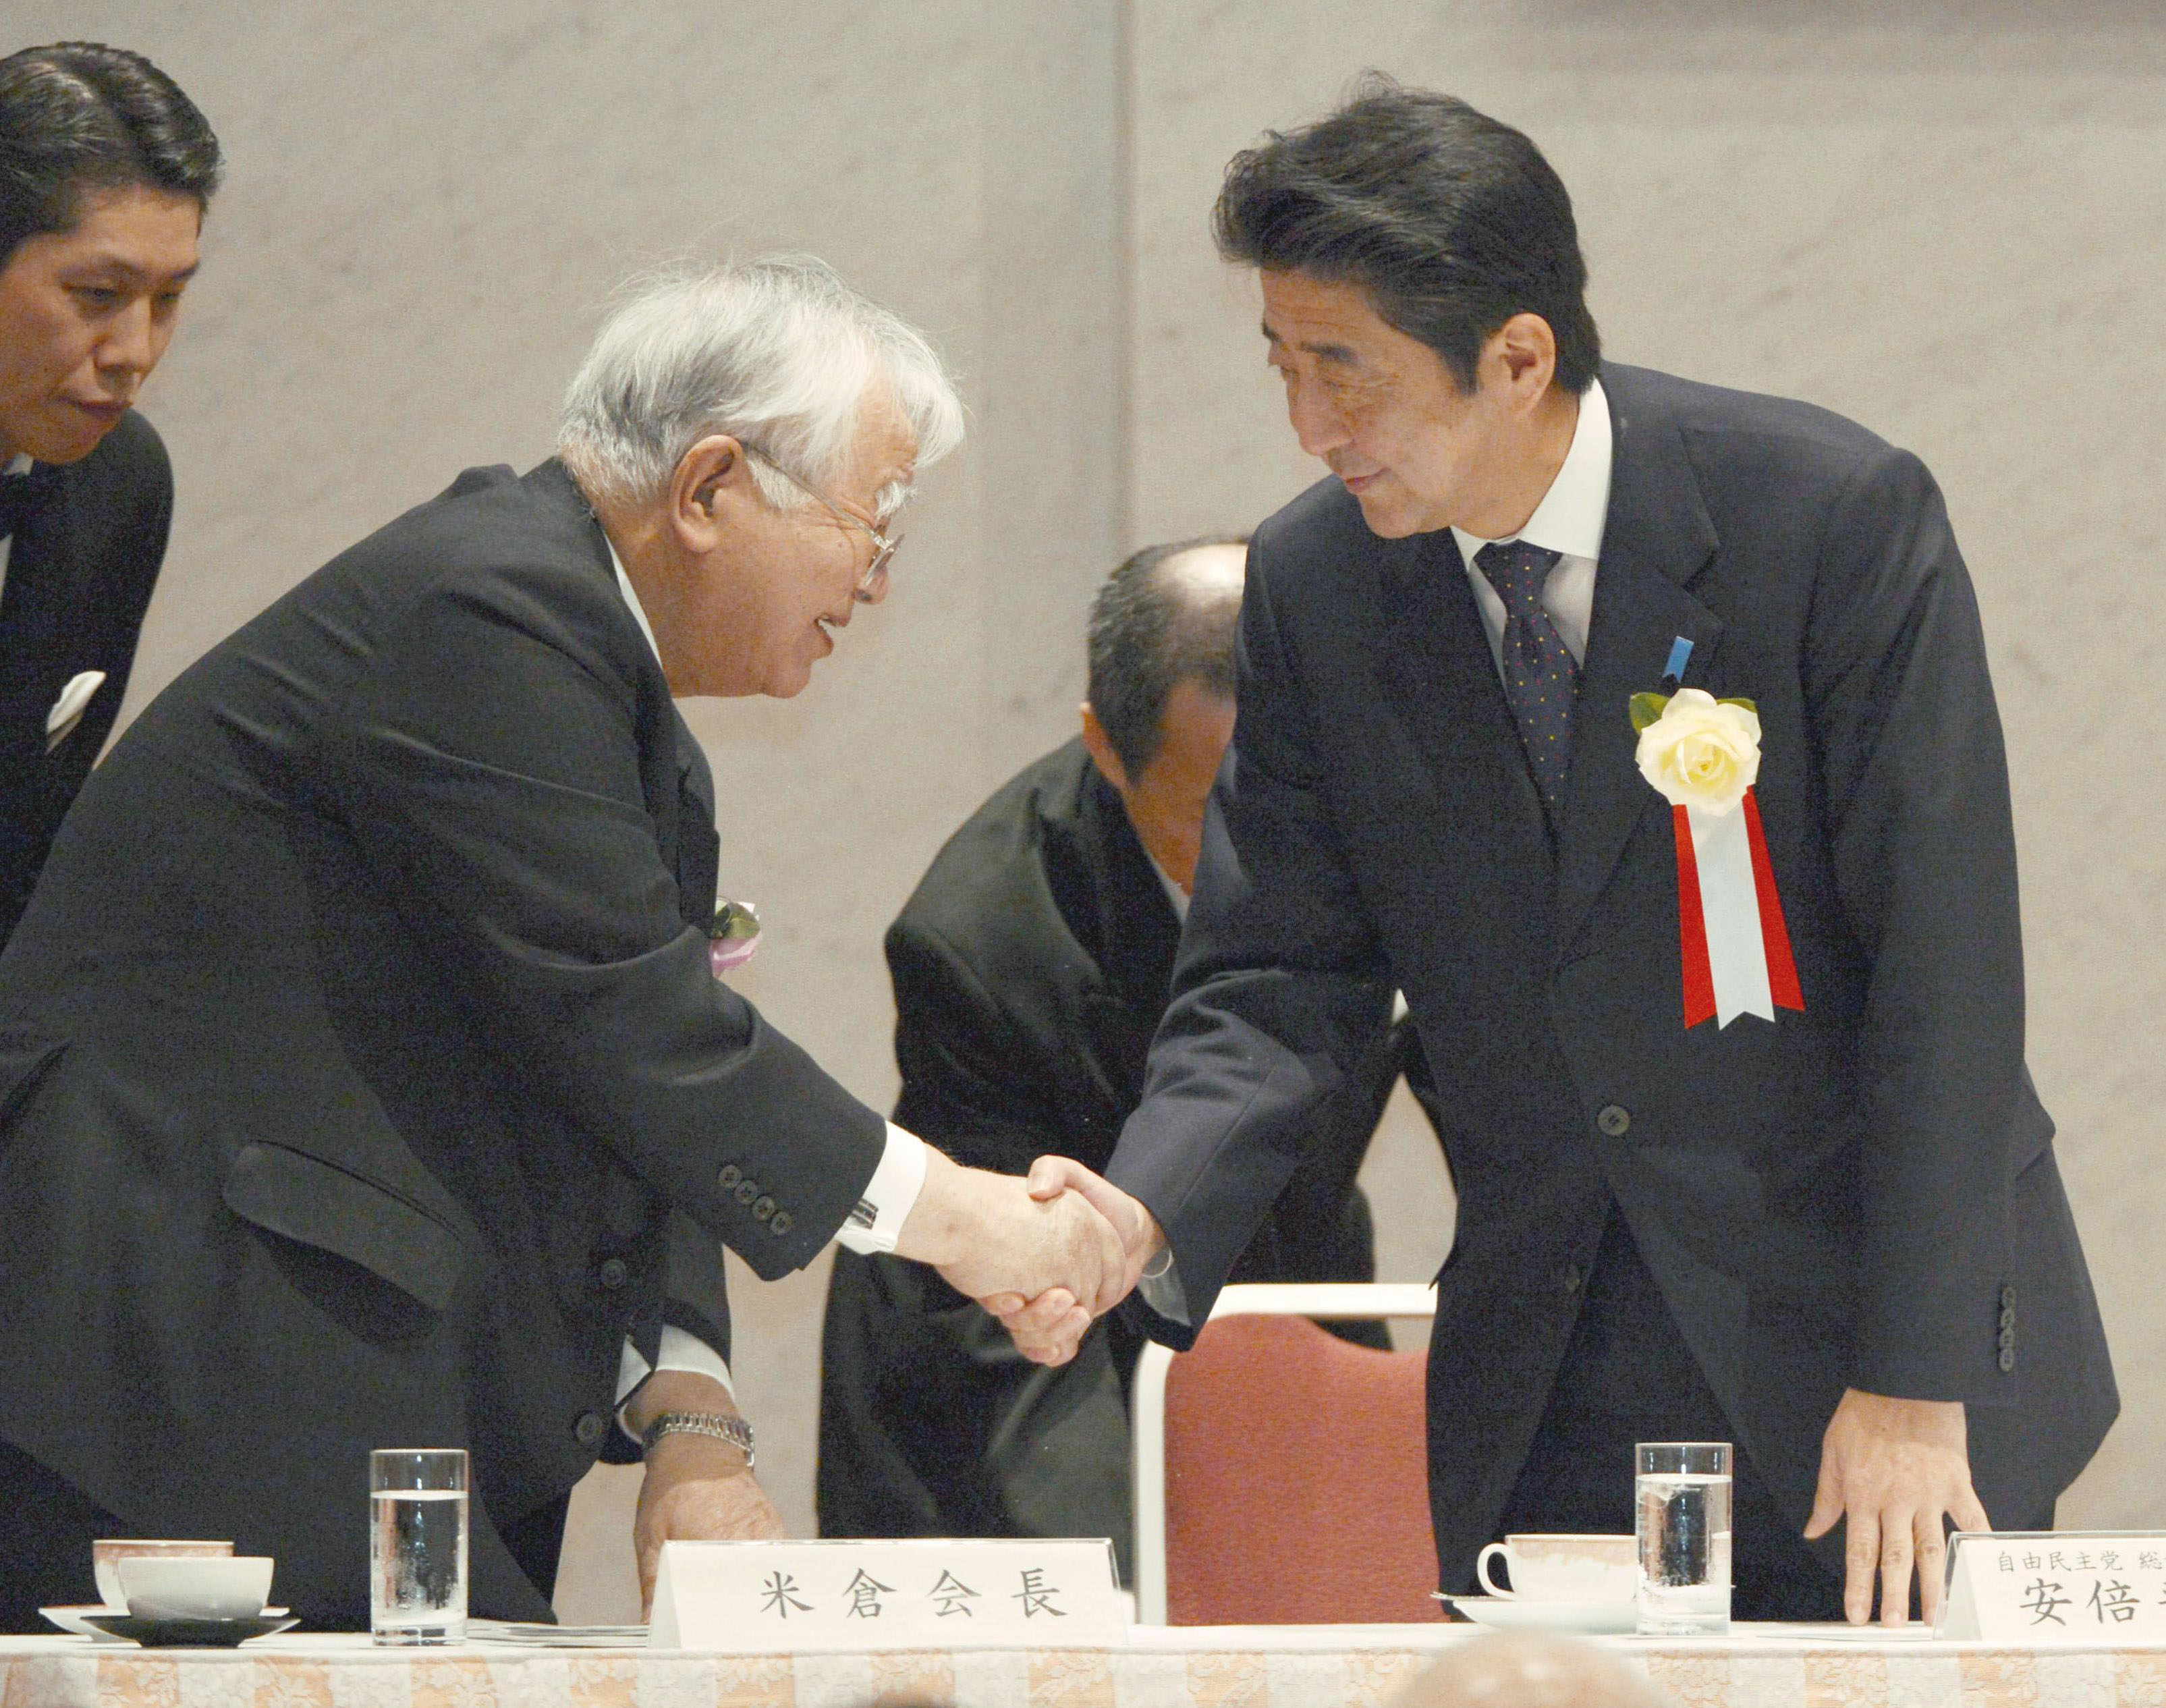 Out of the shadows: Hiromasa Yonekura (left), chairman of Keidanren, the nation's largest business lobby, greets Liberal Democratic Party President Shinzo Abe at a meeting in Tokyo on Dec. 25. | KYODO